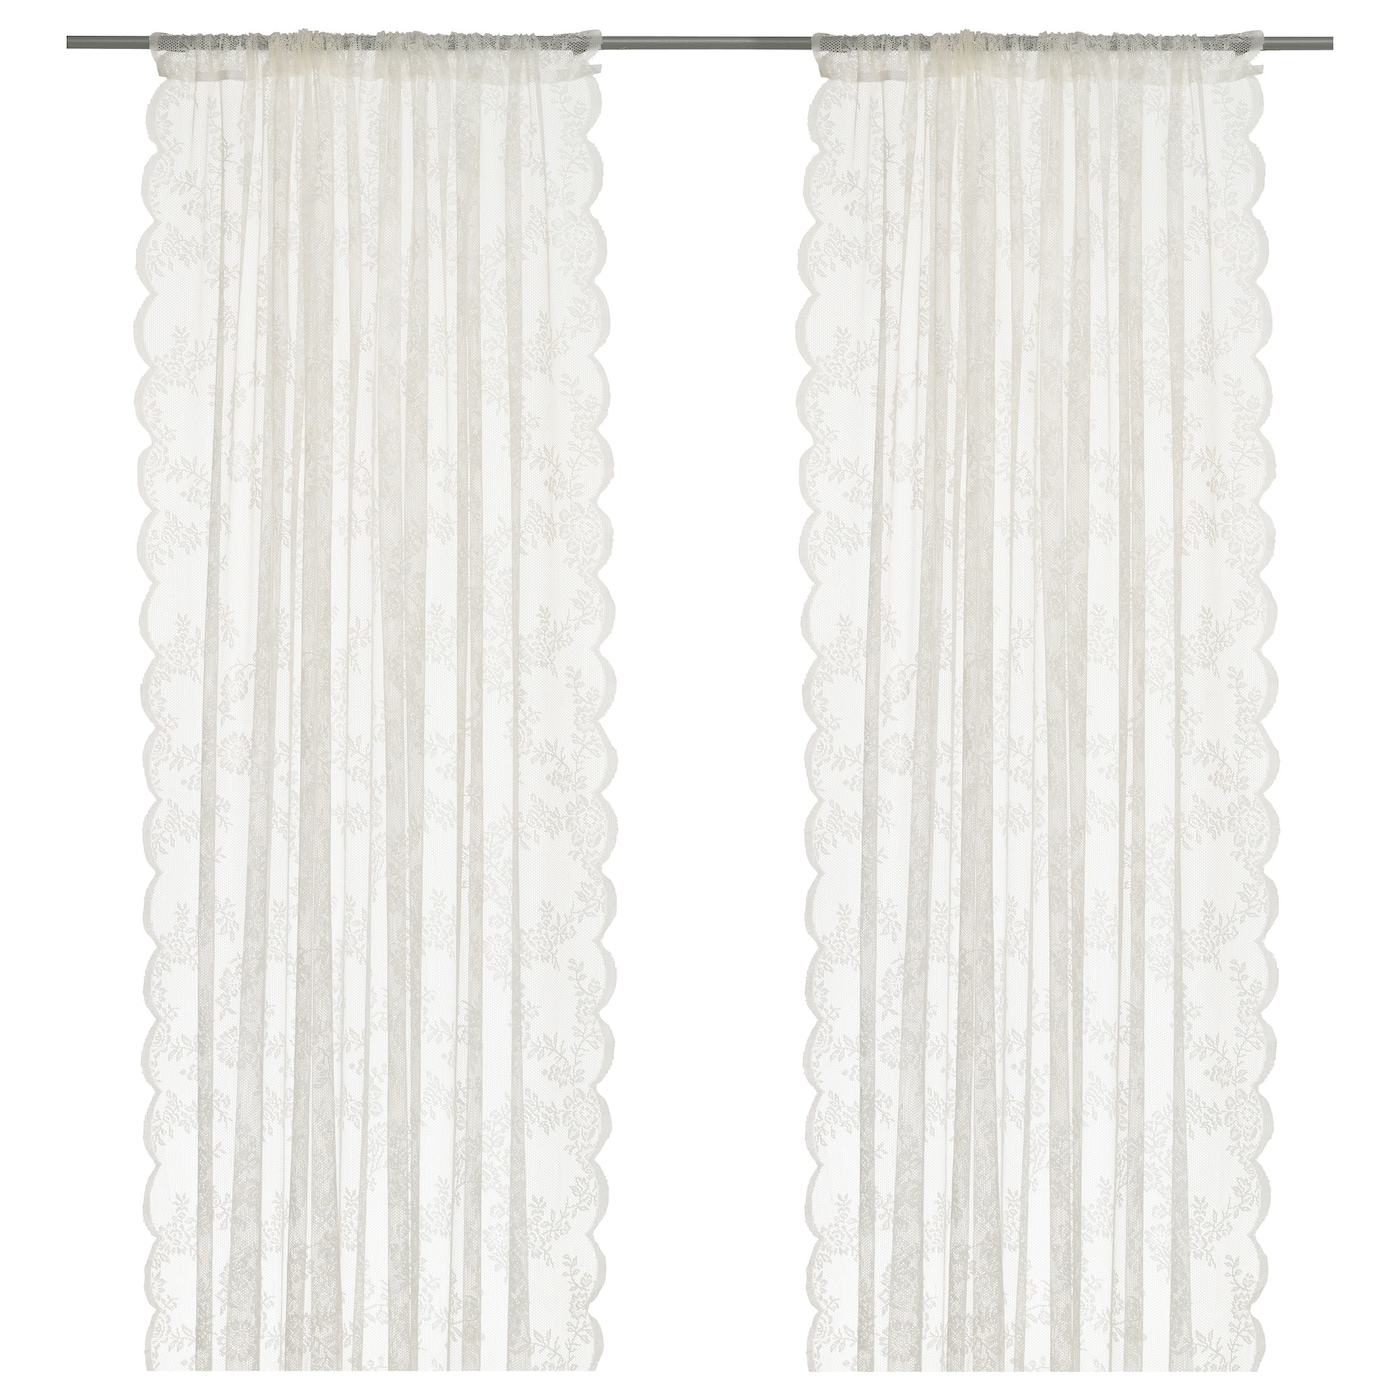 ALVINE SPETS Net curtains 1 pair f white 145x250 cm IKEA